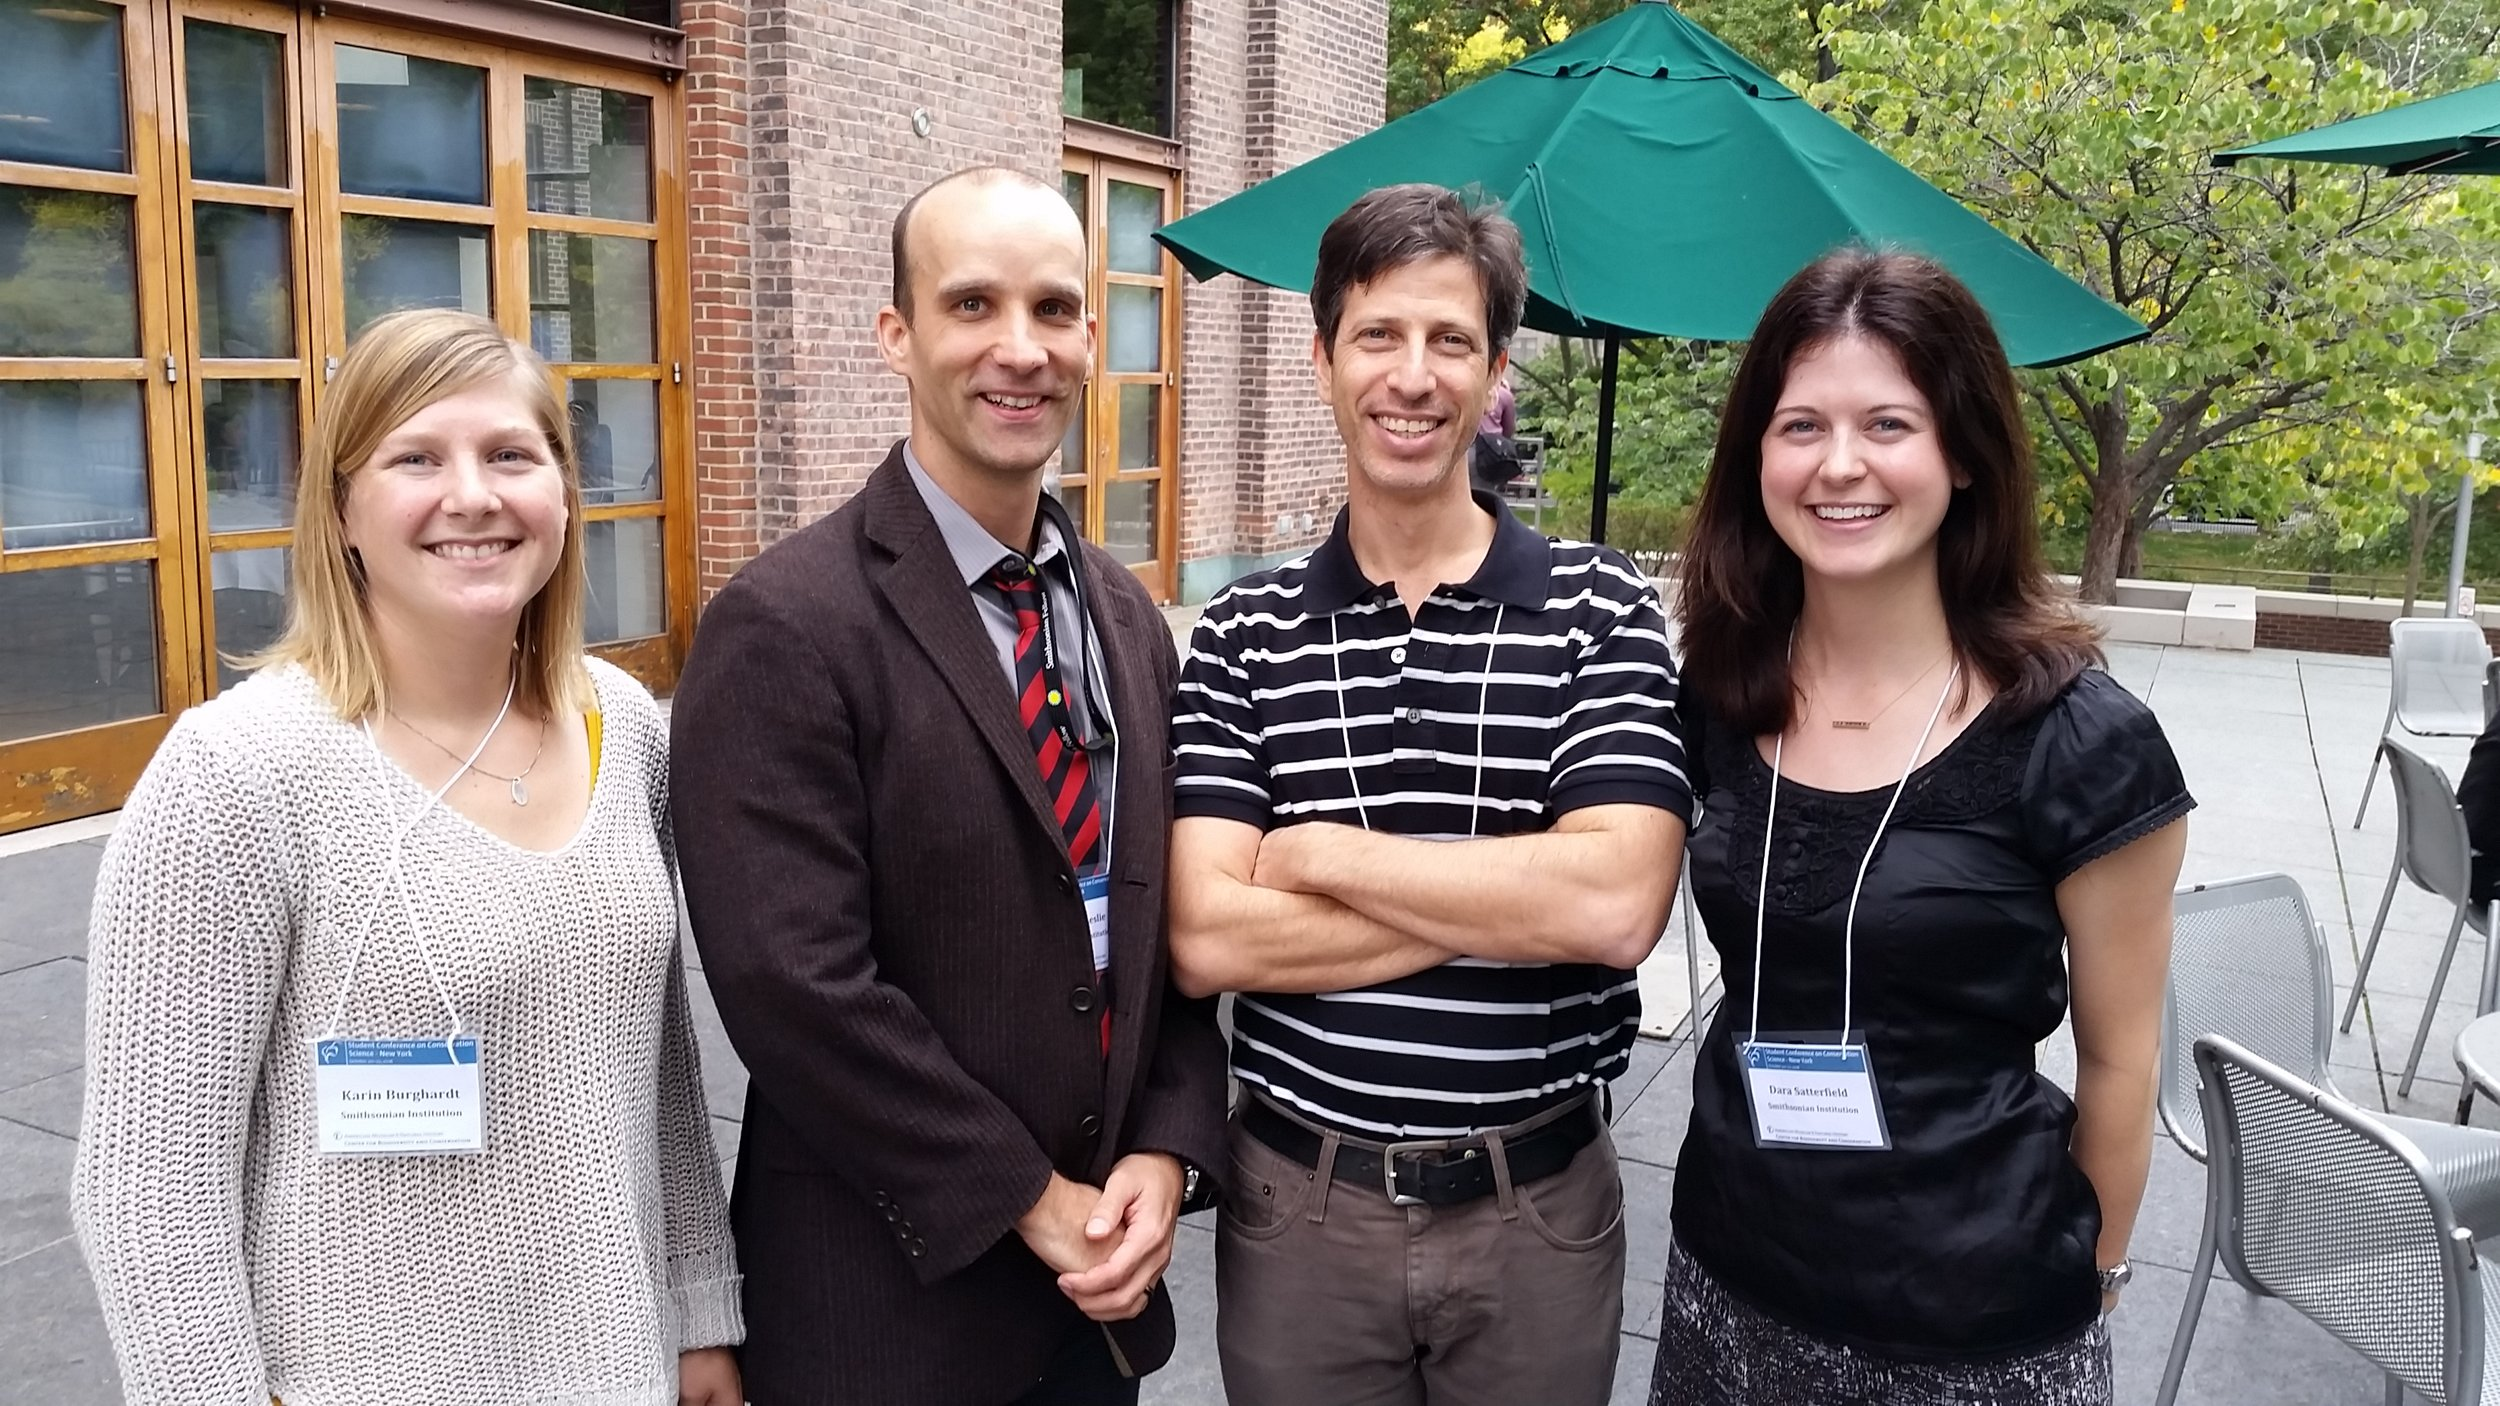 From left to right: Karin Burghardt, Matthew Leslie, Jeremy Feinburg, and Dara Satterfield.